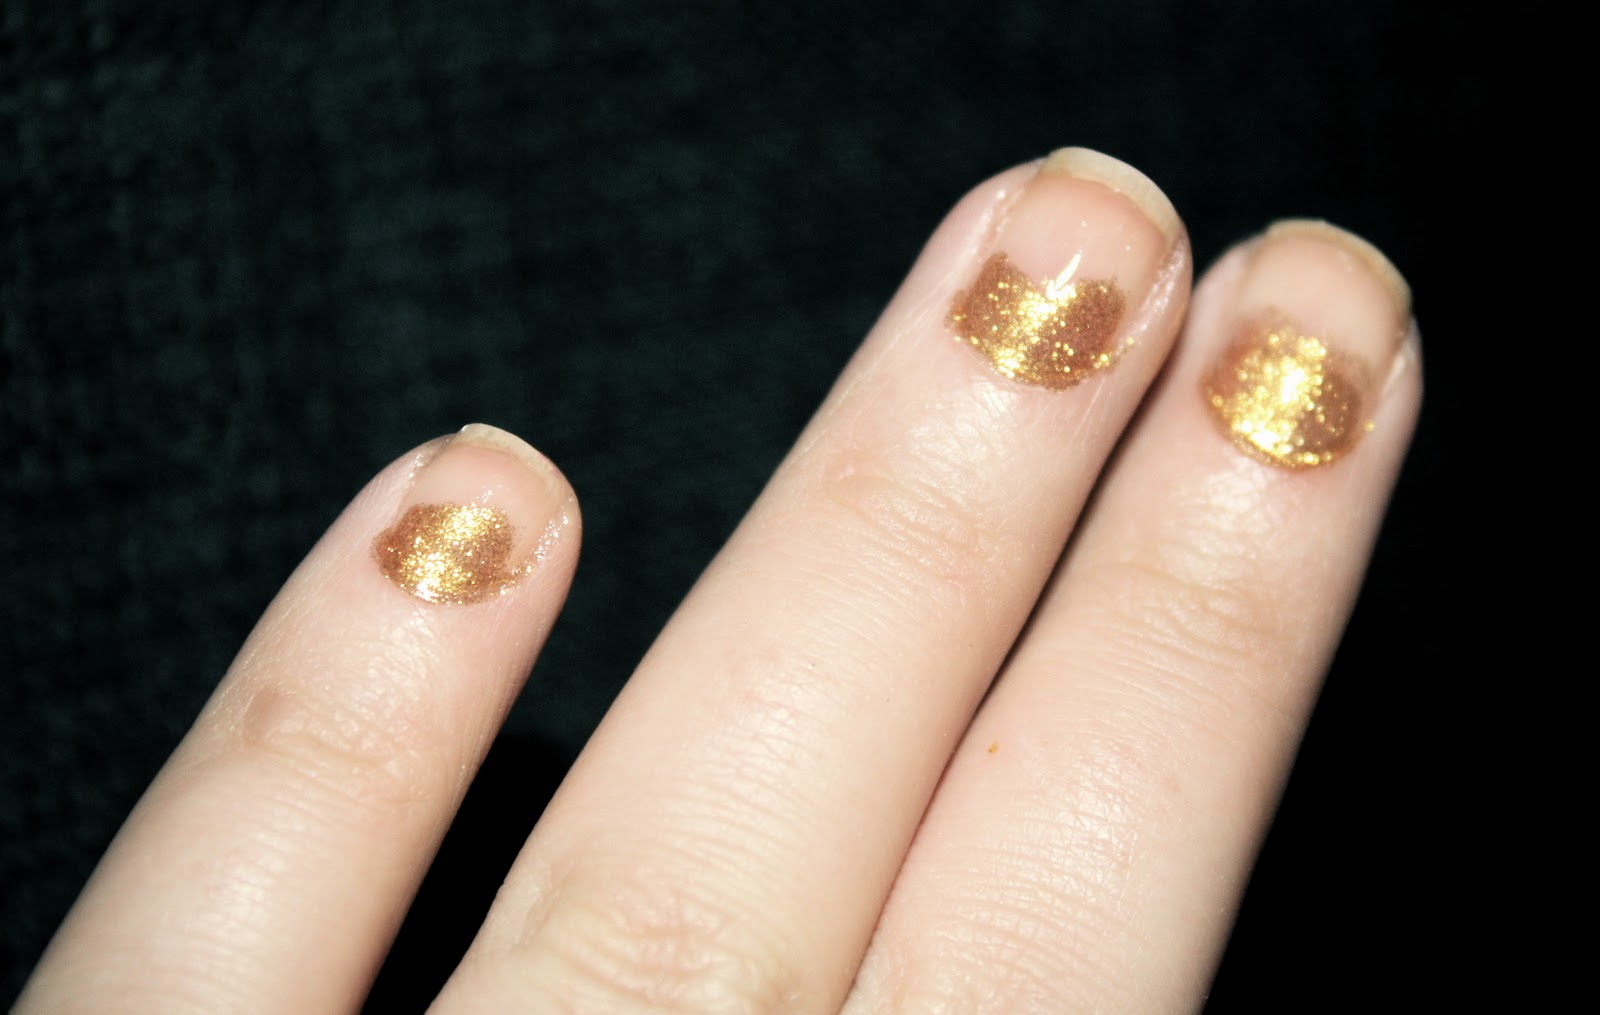 a million dresses | UK Fashion and Lifestyle Blog: Half Moon Nail ...